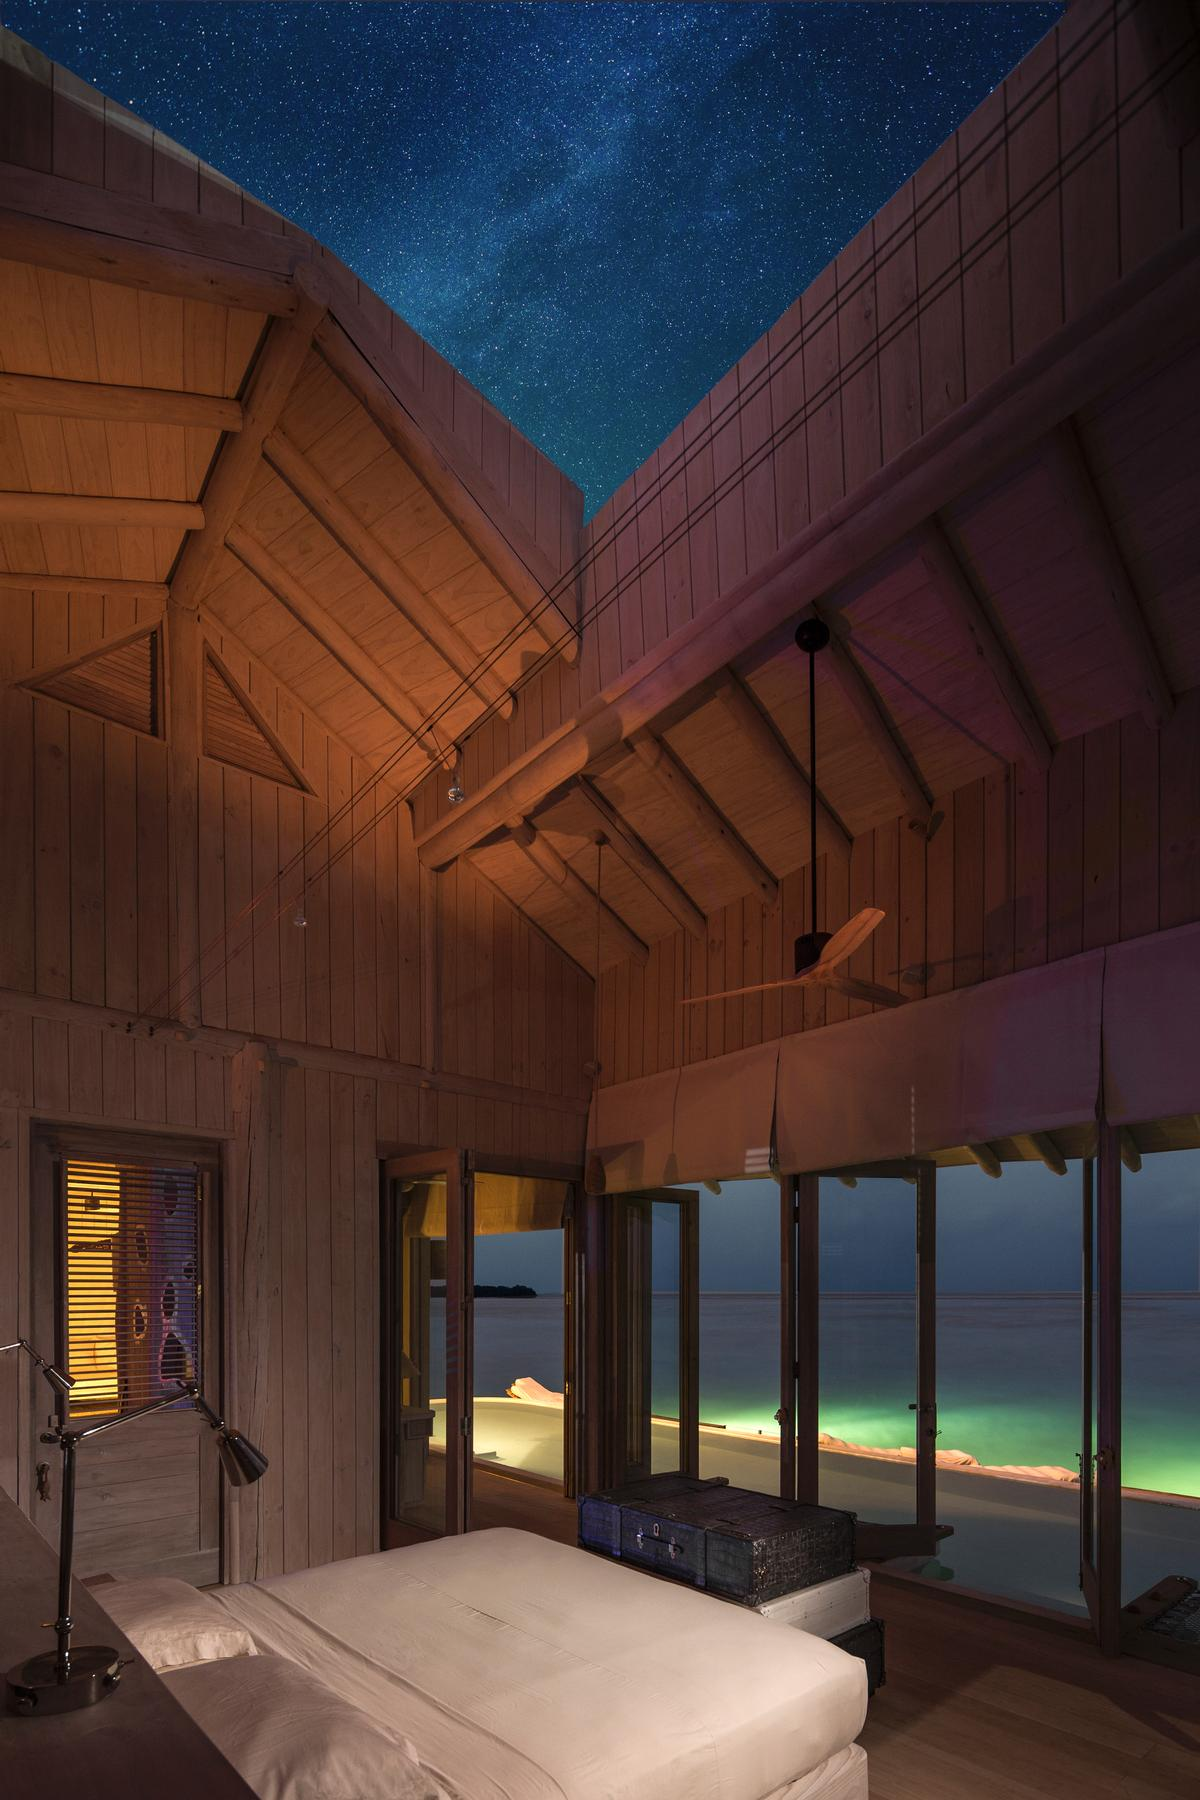 The bedroom roofs at the Soneva Javi resort can be opened at the touch of a button to reveal the night sky / Richard Waite